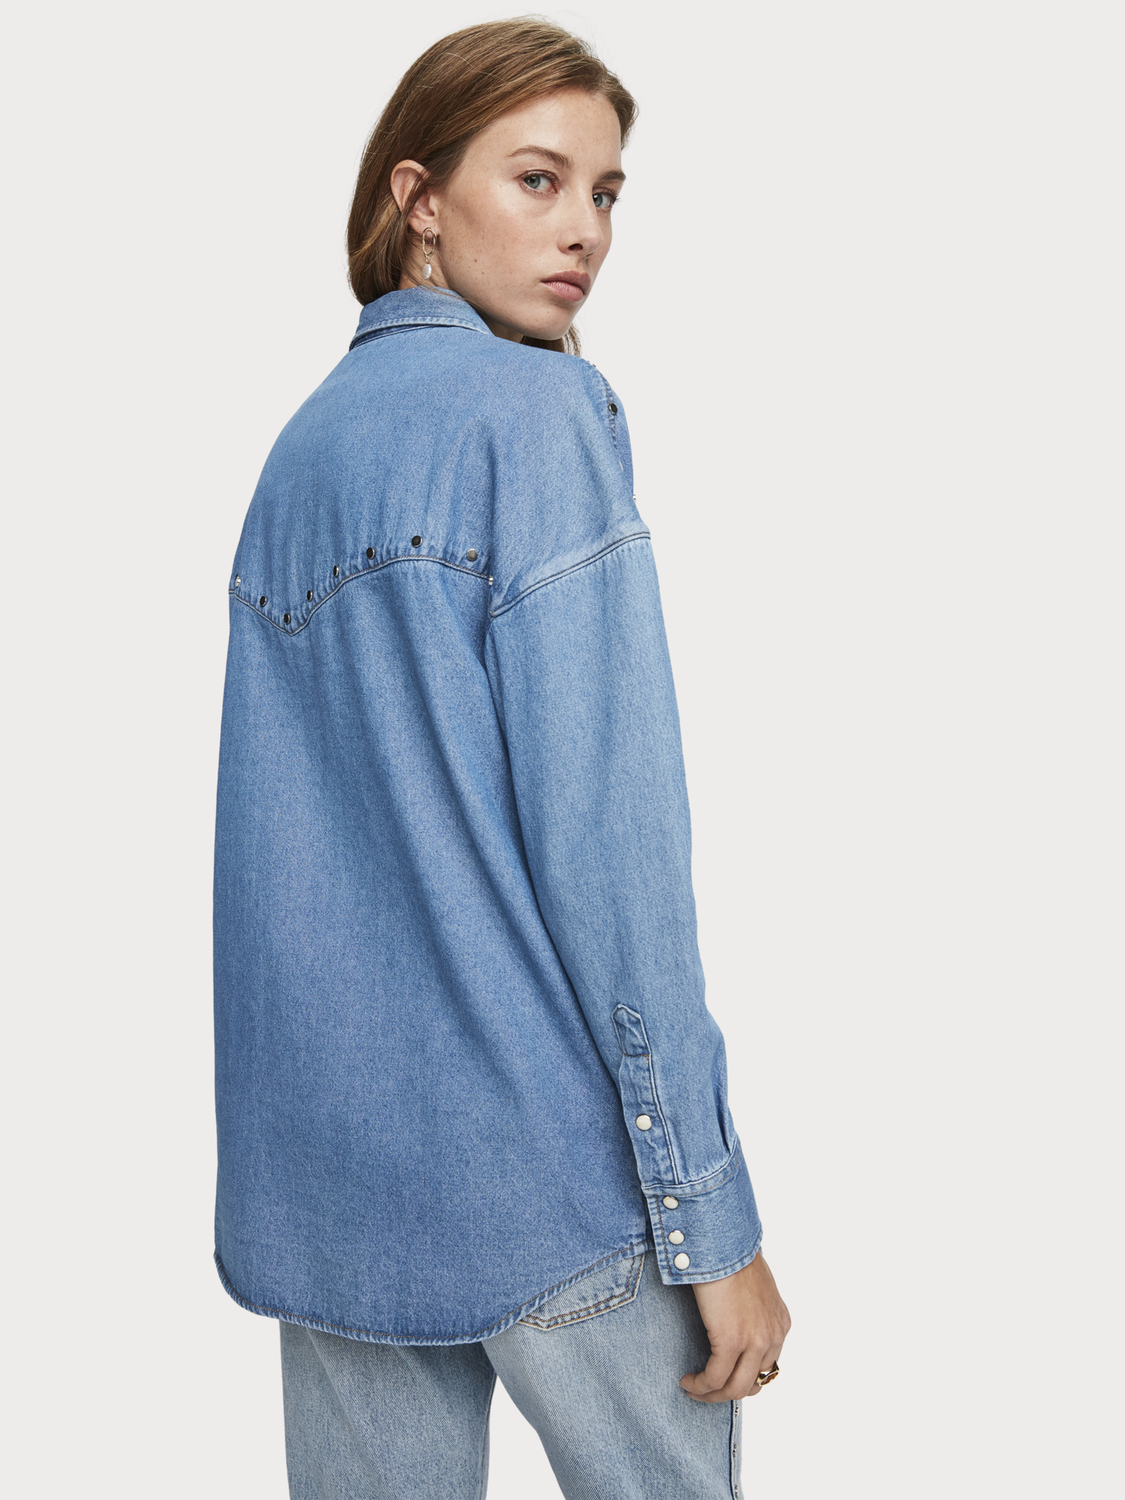 Women Oversized Studded Denim Shirt